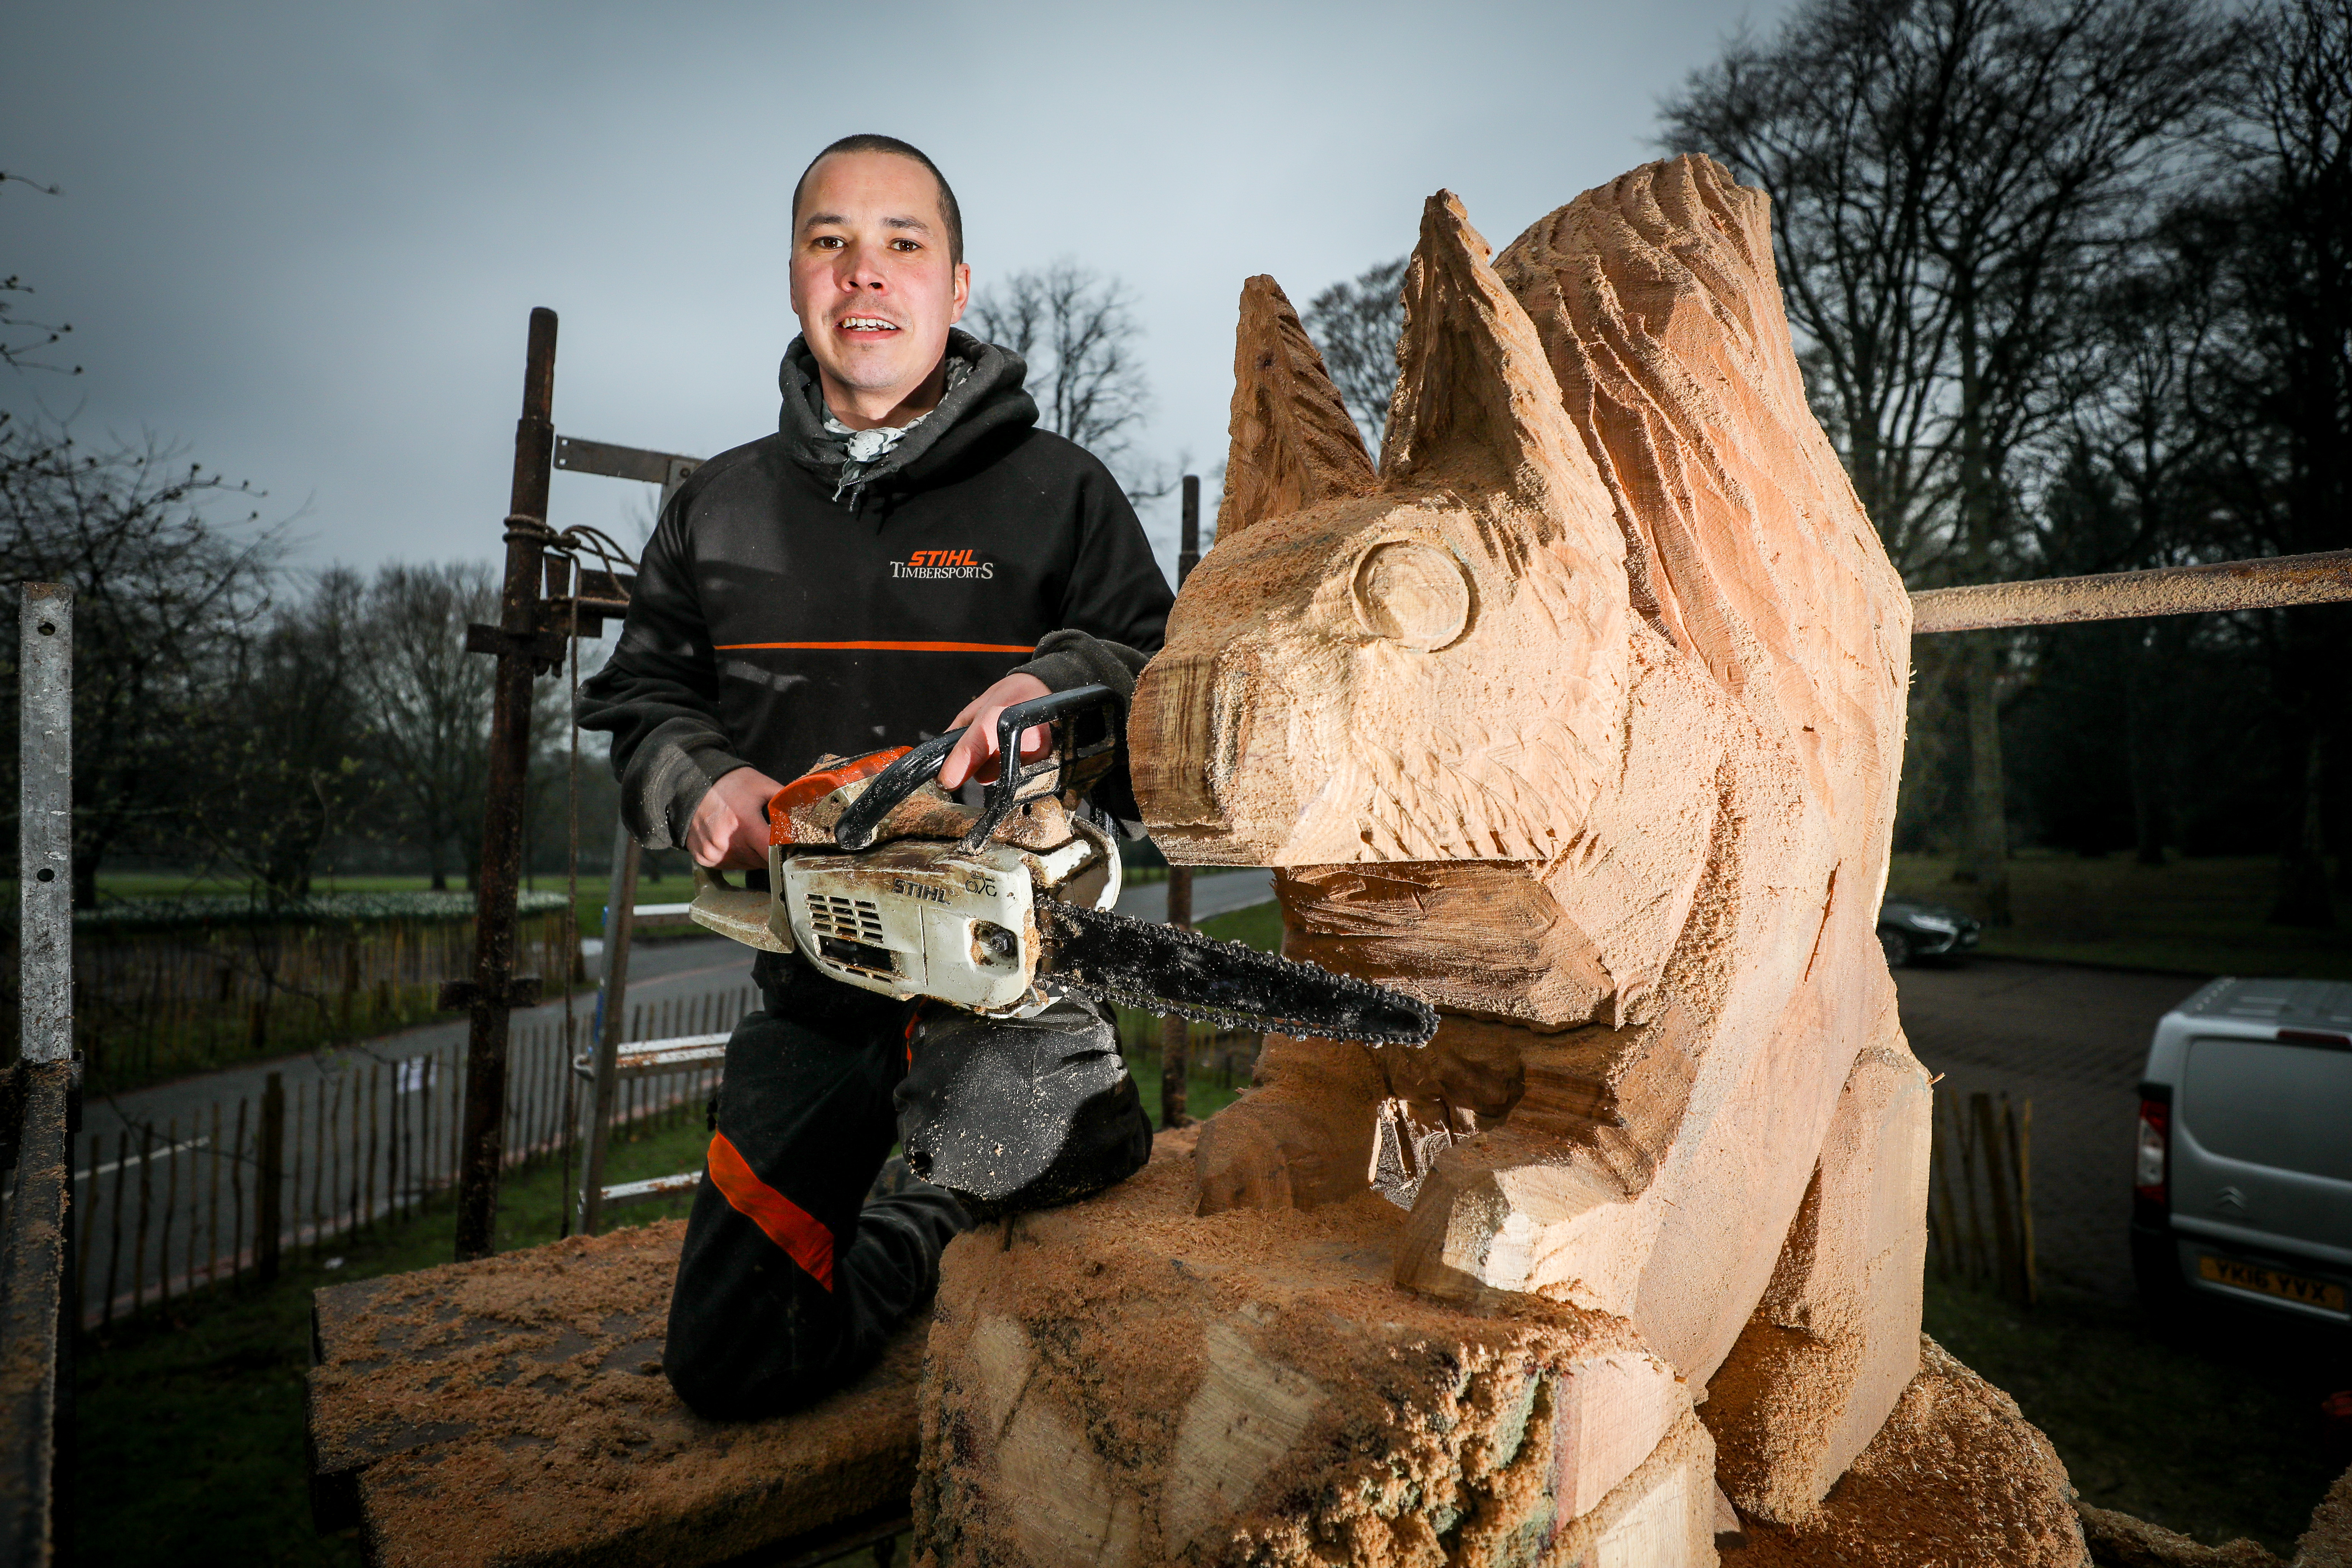 Tom Harris-Ward with the sculpture at Camperdown Park.